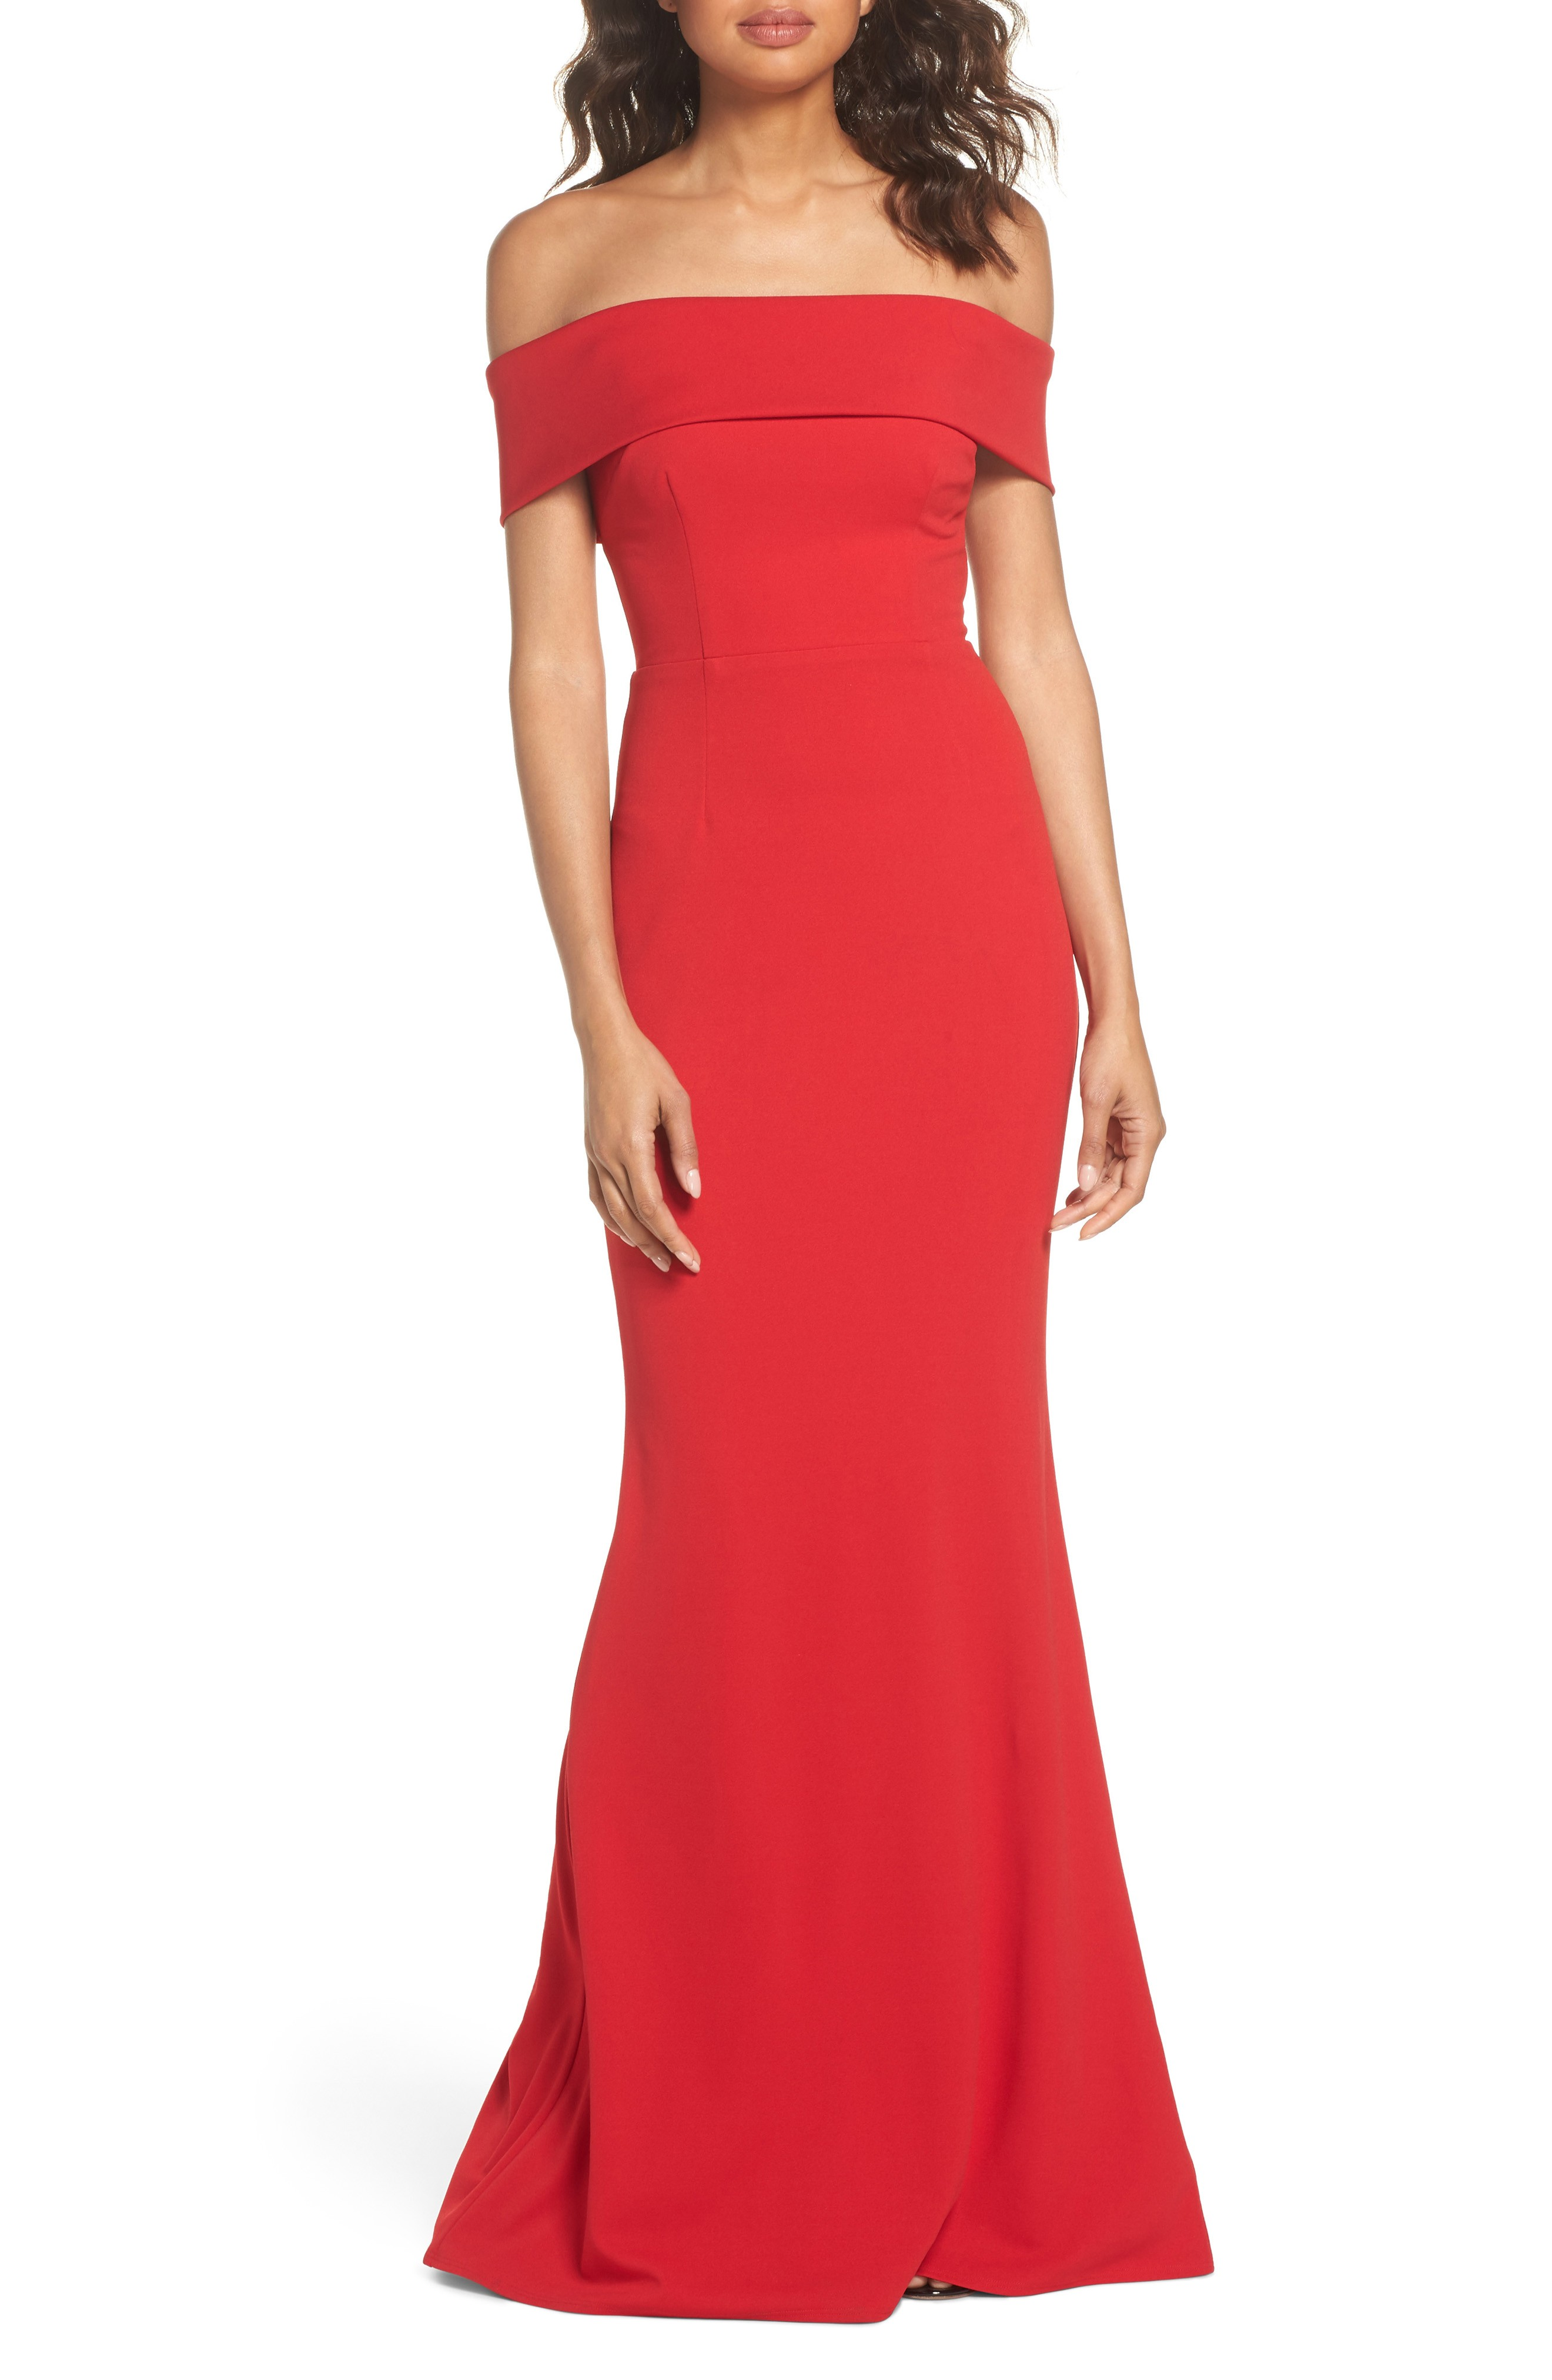 KATIE MAY Legacy Crepe Body-Con Red Gown - We Select Dresses